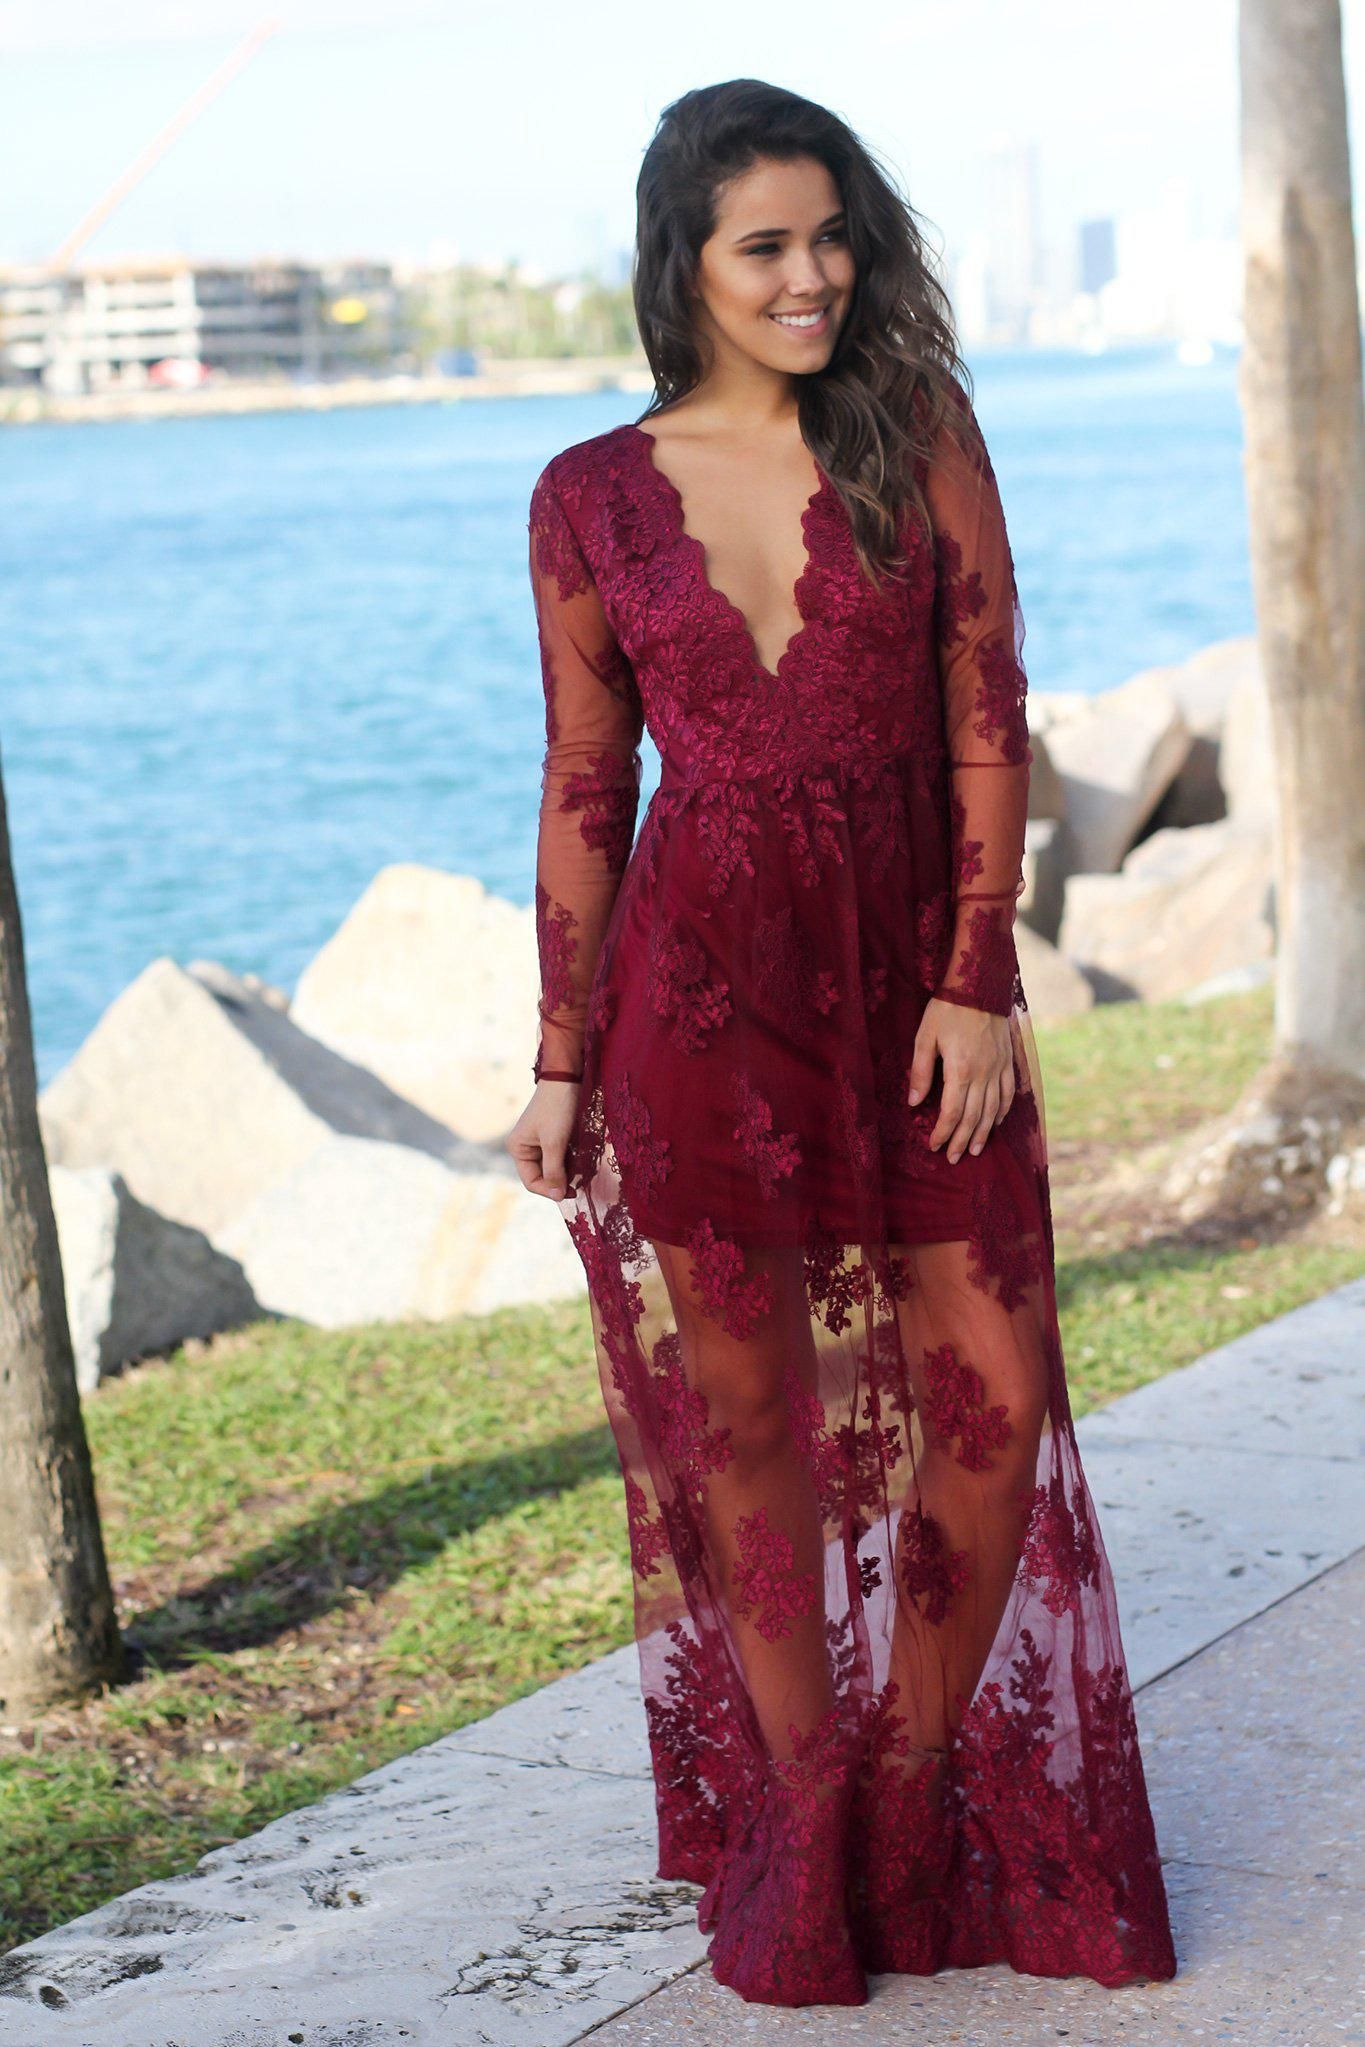 Wine Embroidered Maxi Dress With Long Sleeves Maxi Dress Party Maxi Dress Trendy Dresses